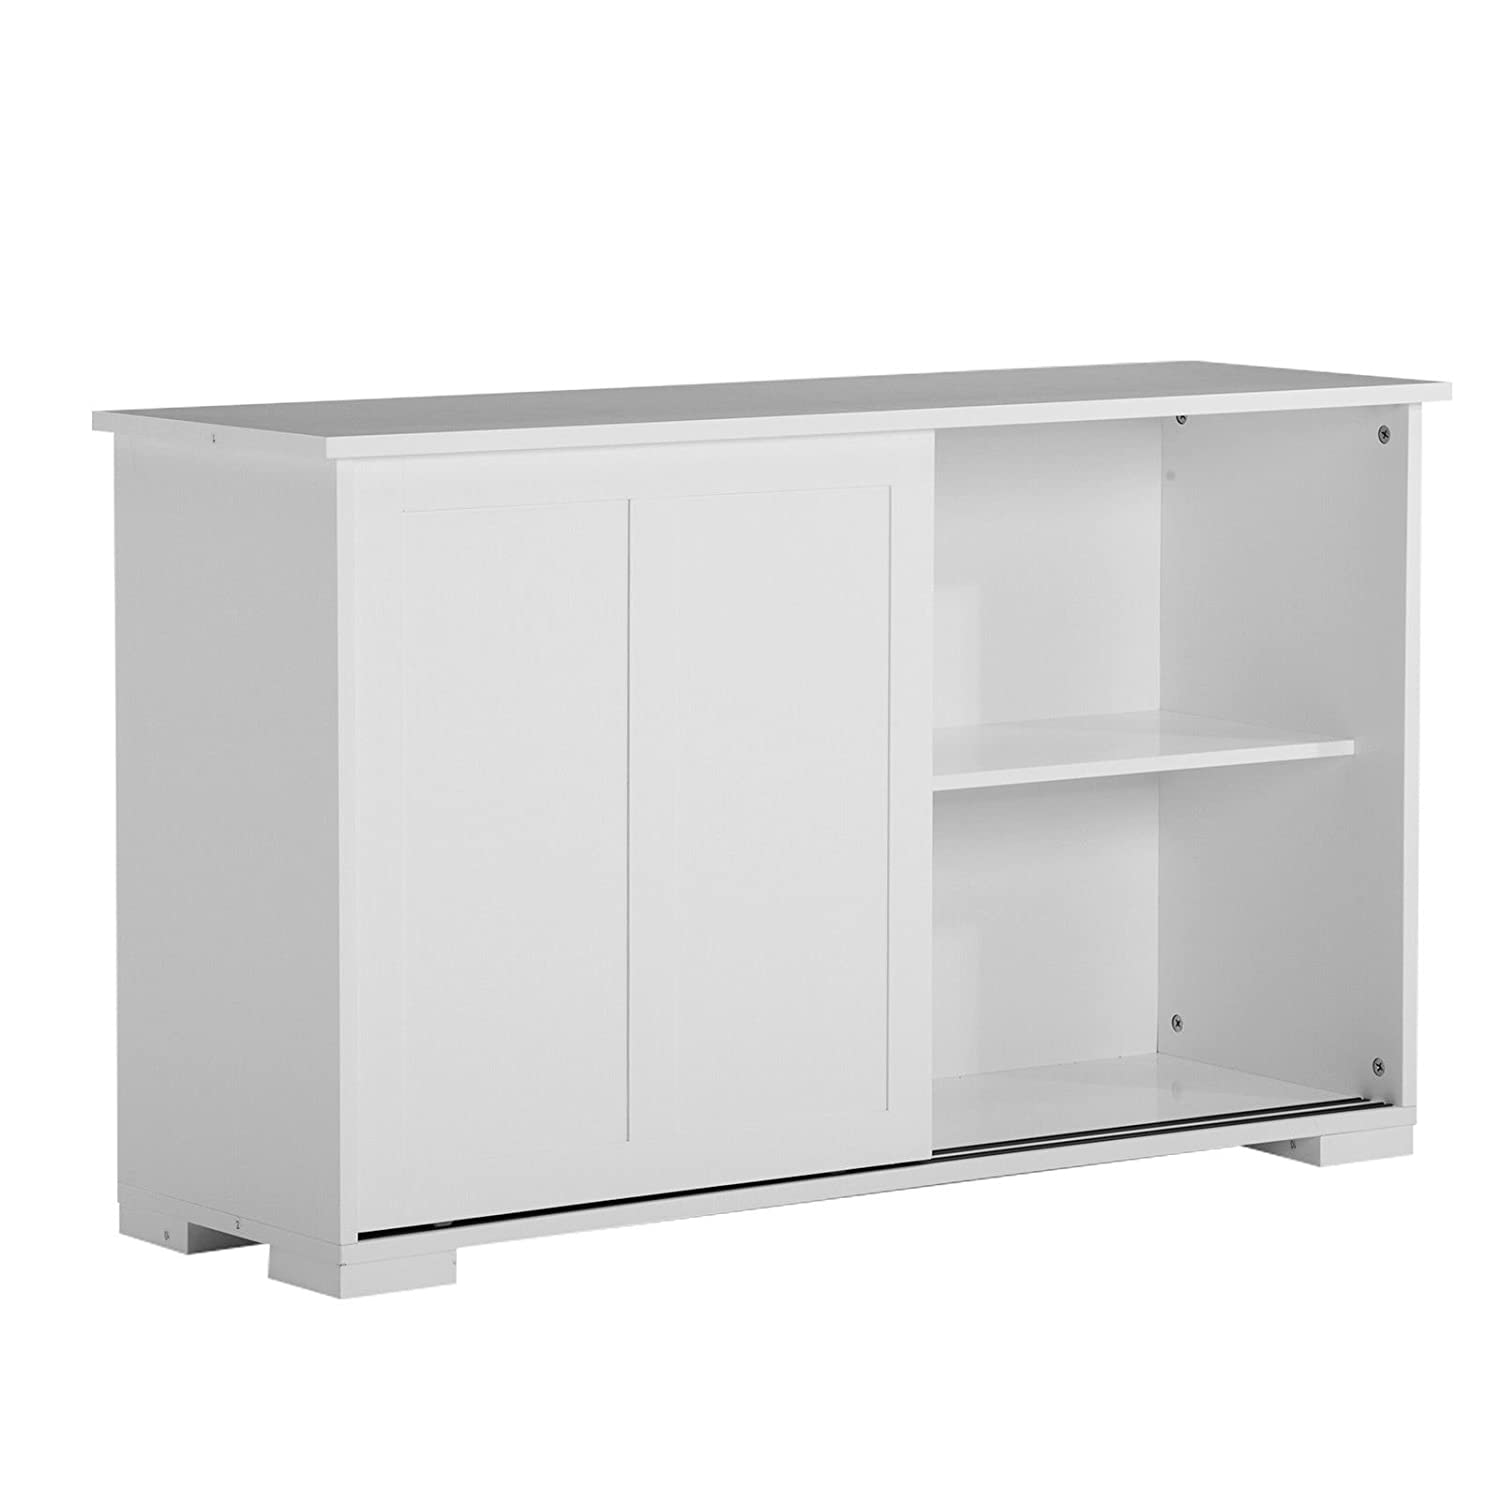 White Buffet Kitchen Cupboard Cabinet Sideboard W 2 Sliding Doors & 1 Shelf for Storage Allblessings